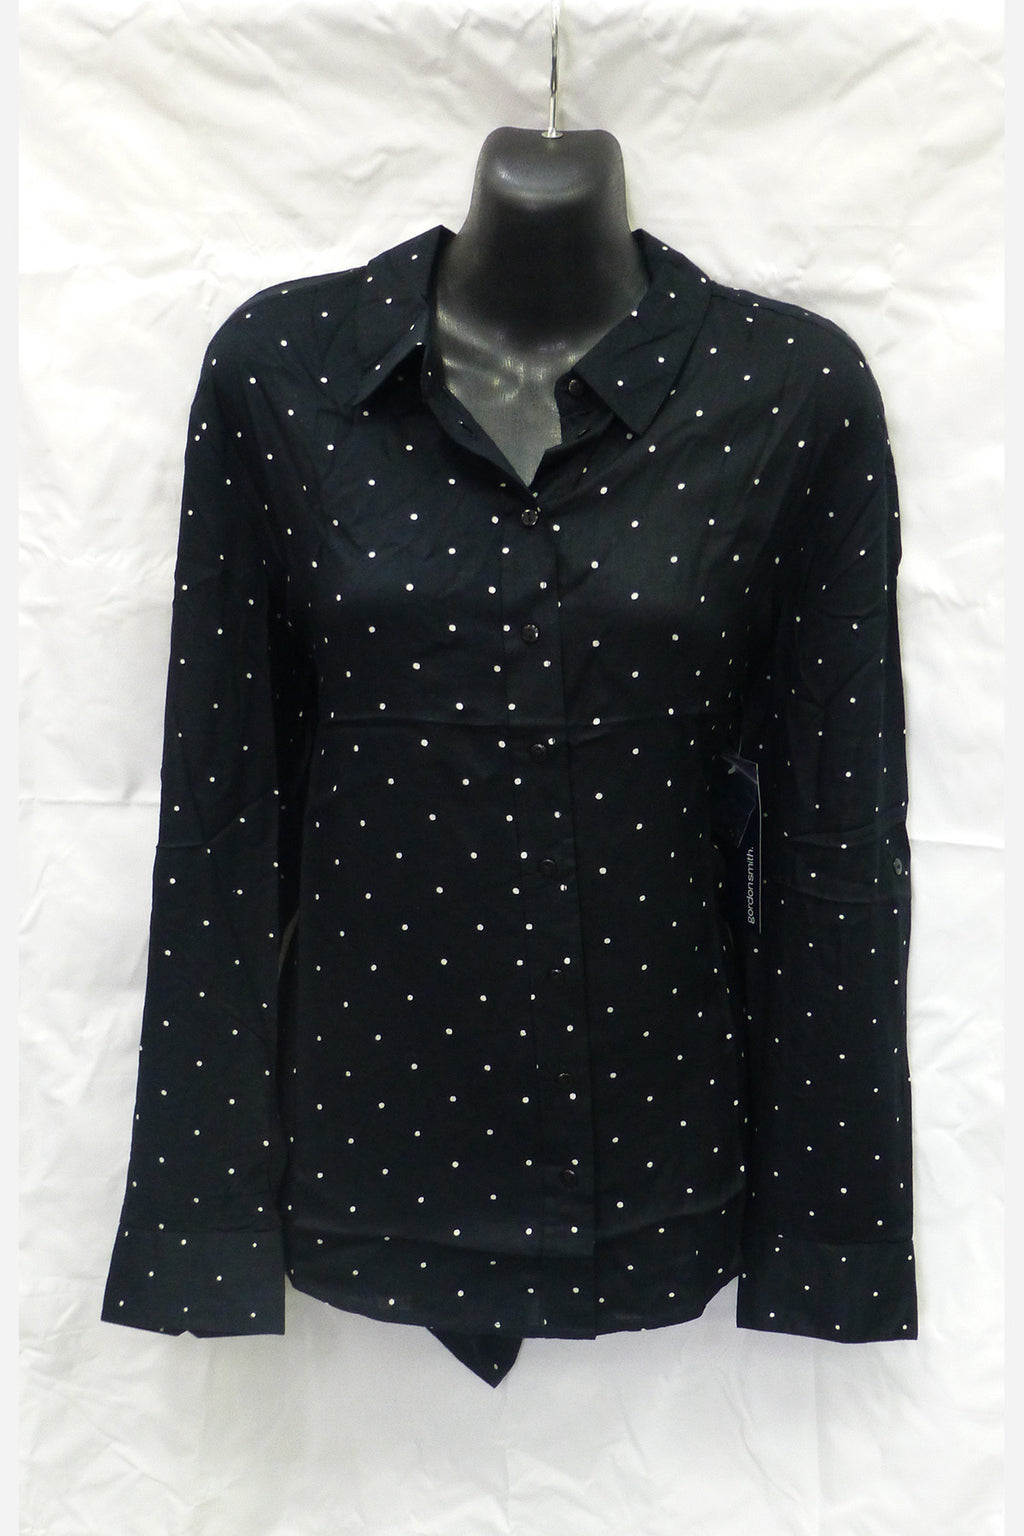 Black Spotted Shirt - Style No: 105059